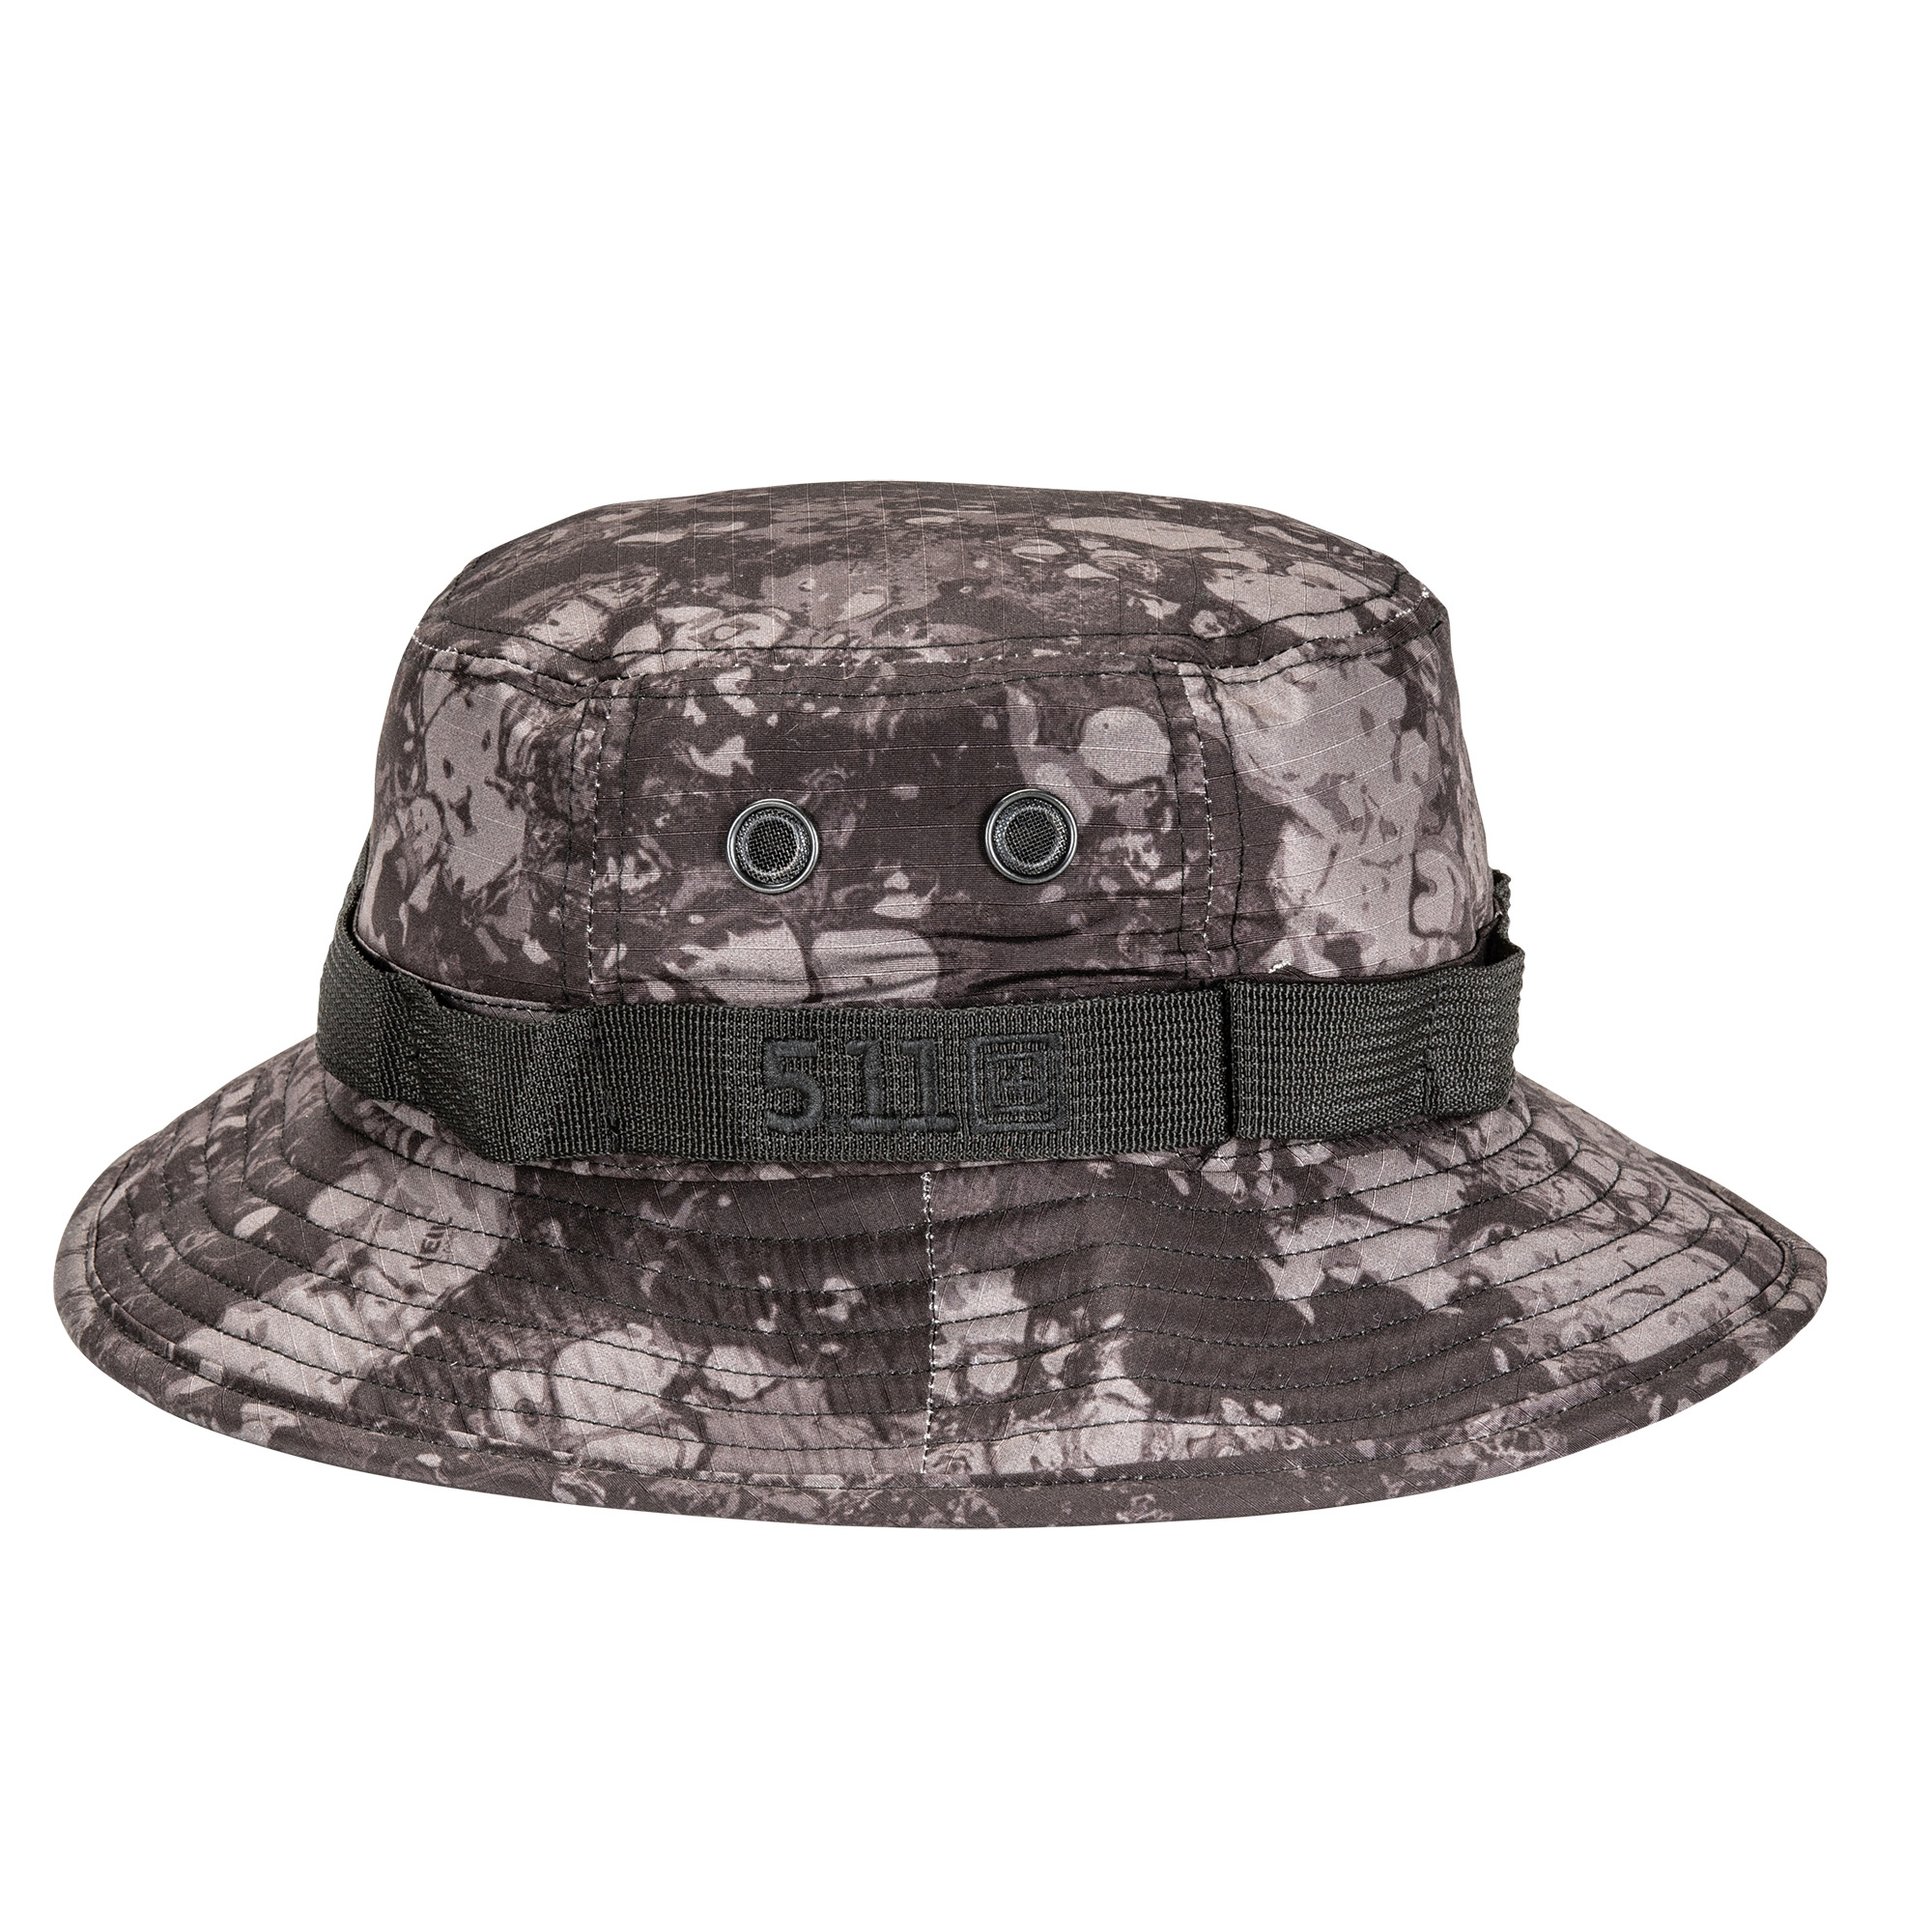 043761e40337c Buy 5.11 Tactical Geo7 Boonie Hat - 5.11 Tactical Online at Best ...